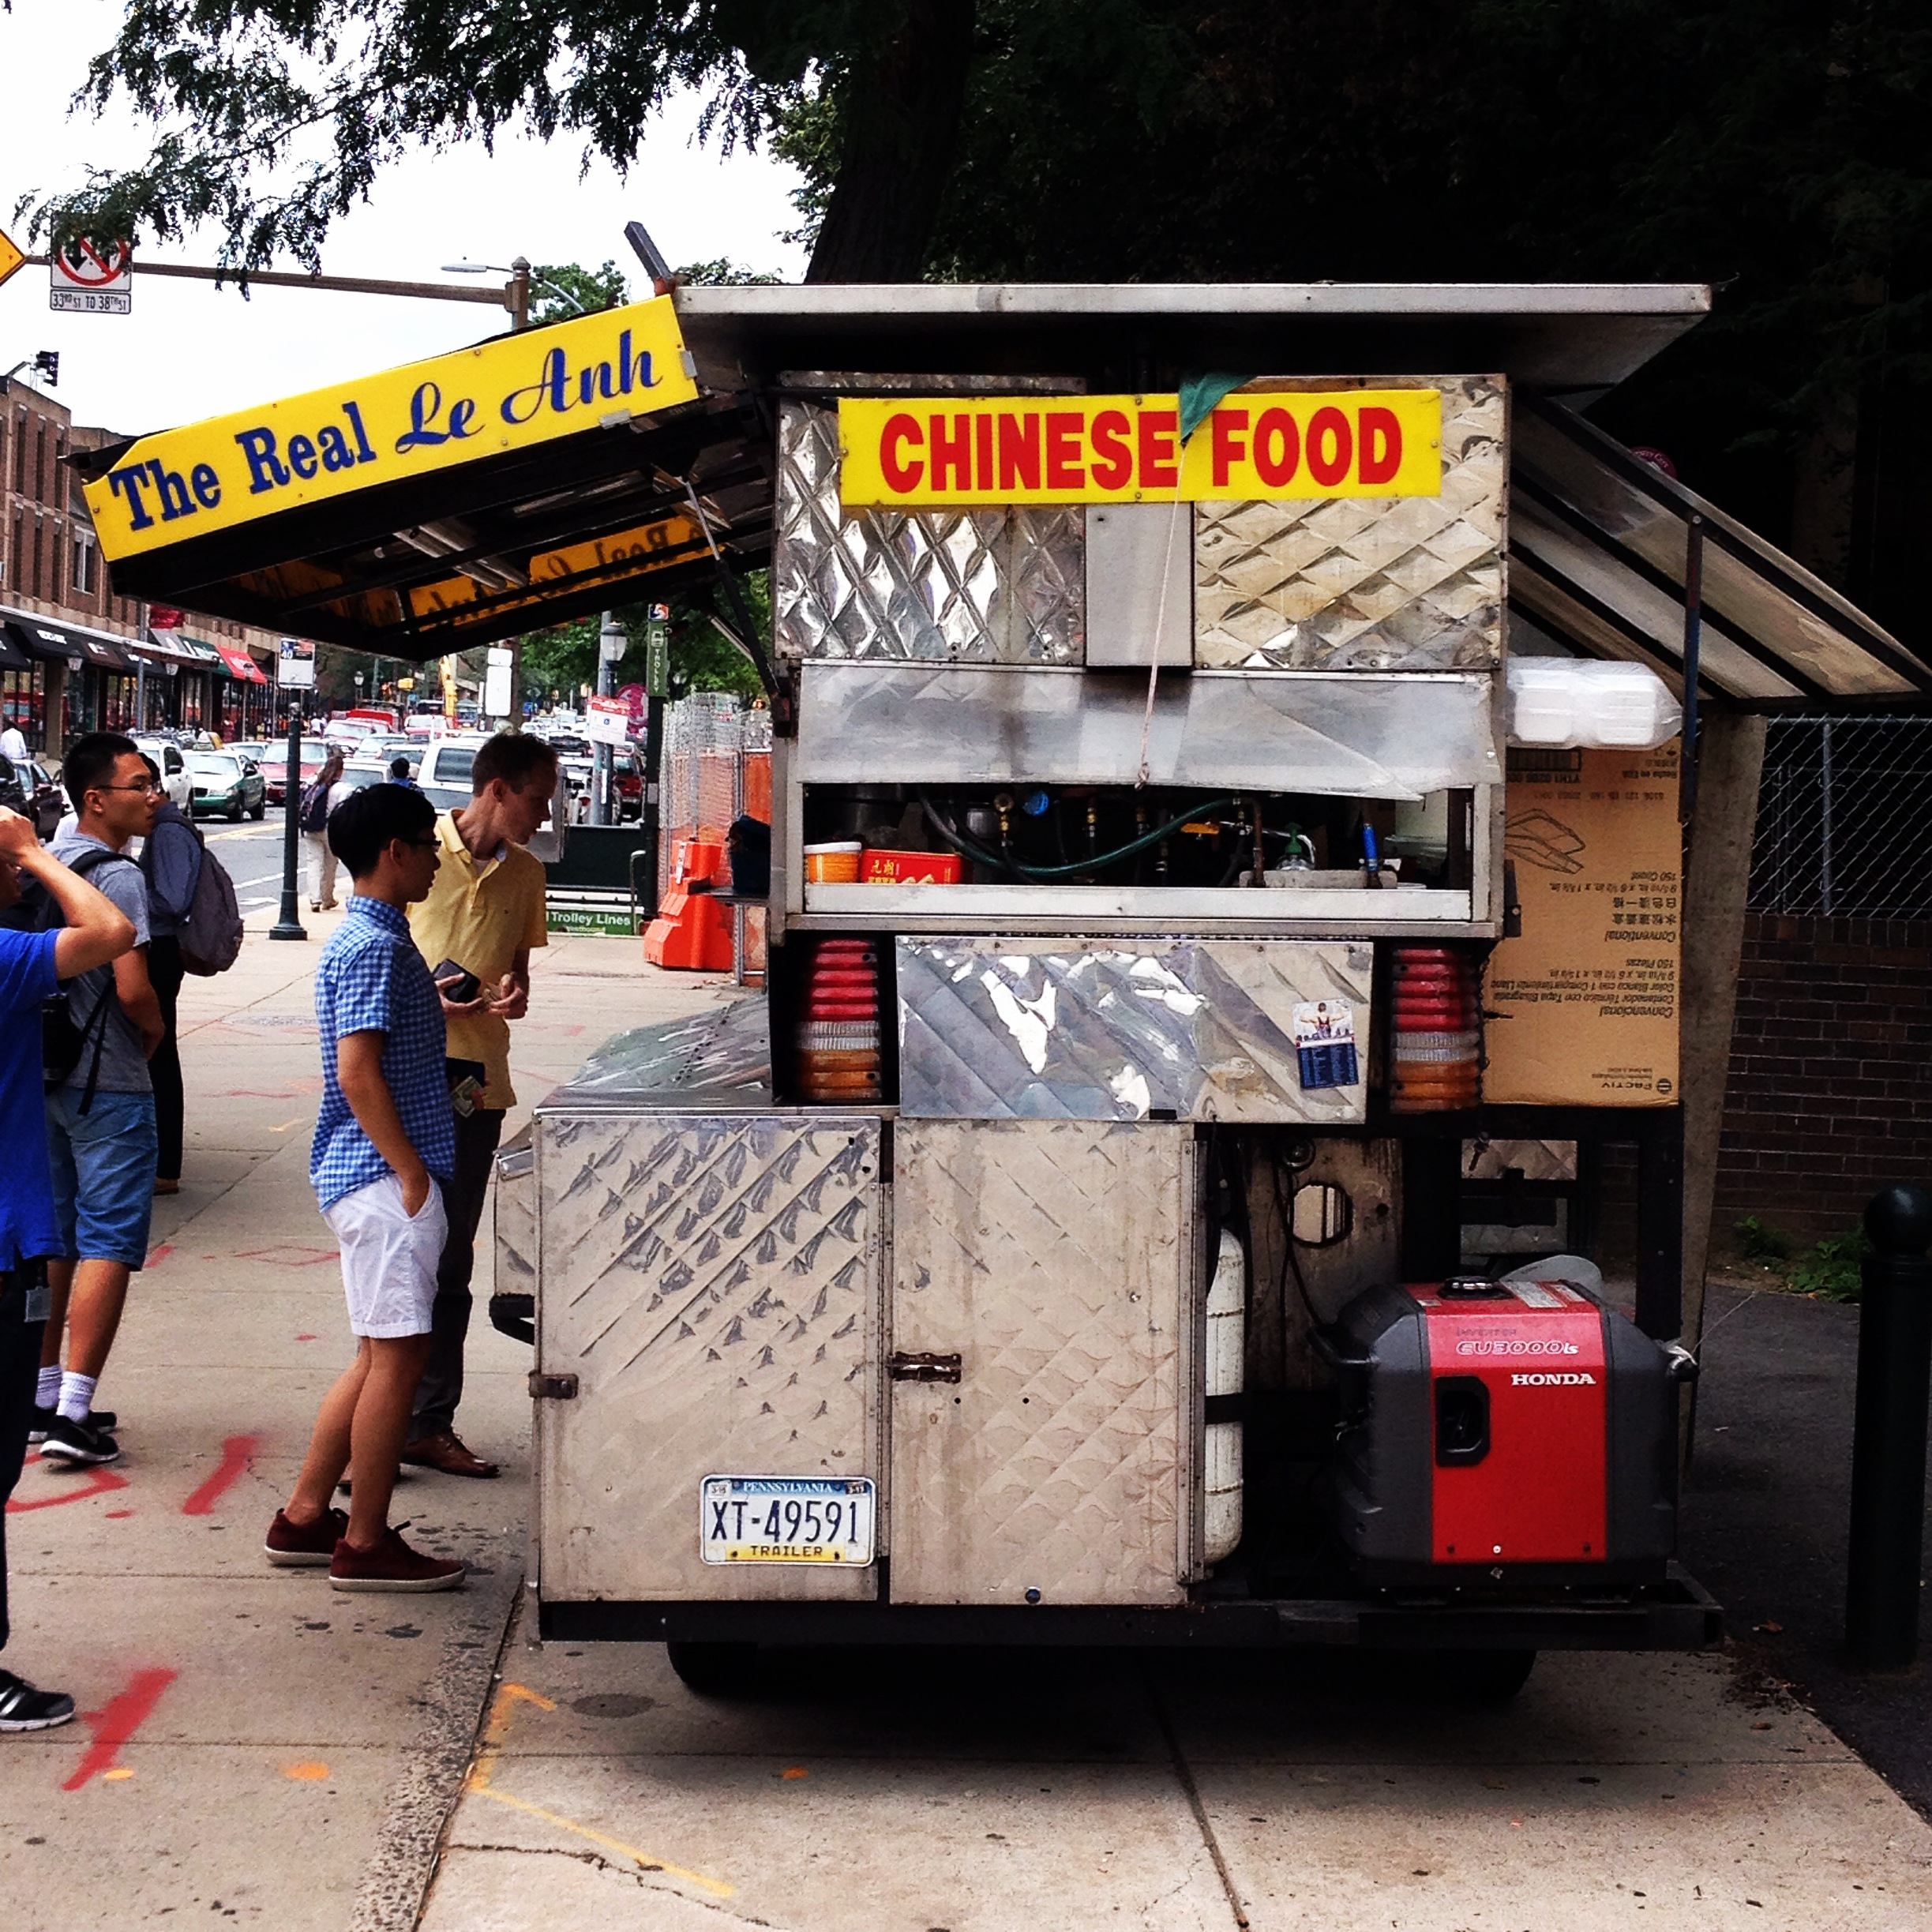 Chinese Food 10024: The Real Le Anh Chinese Food Cart, Philadelphia, PA